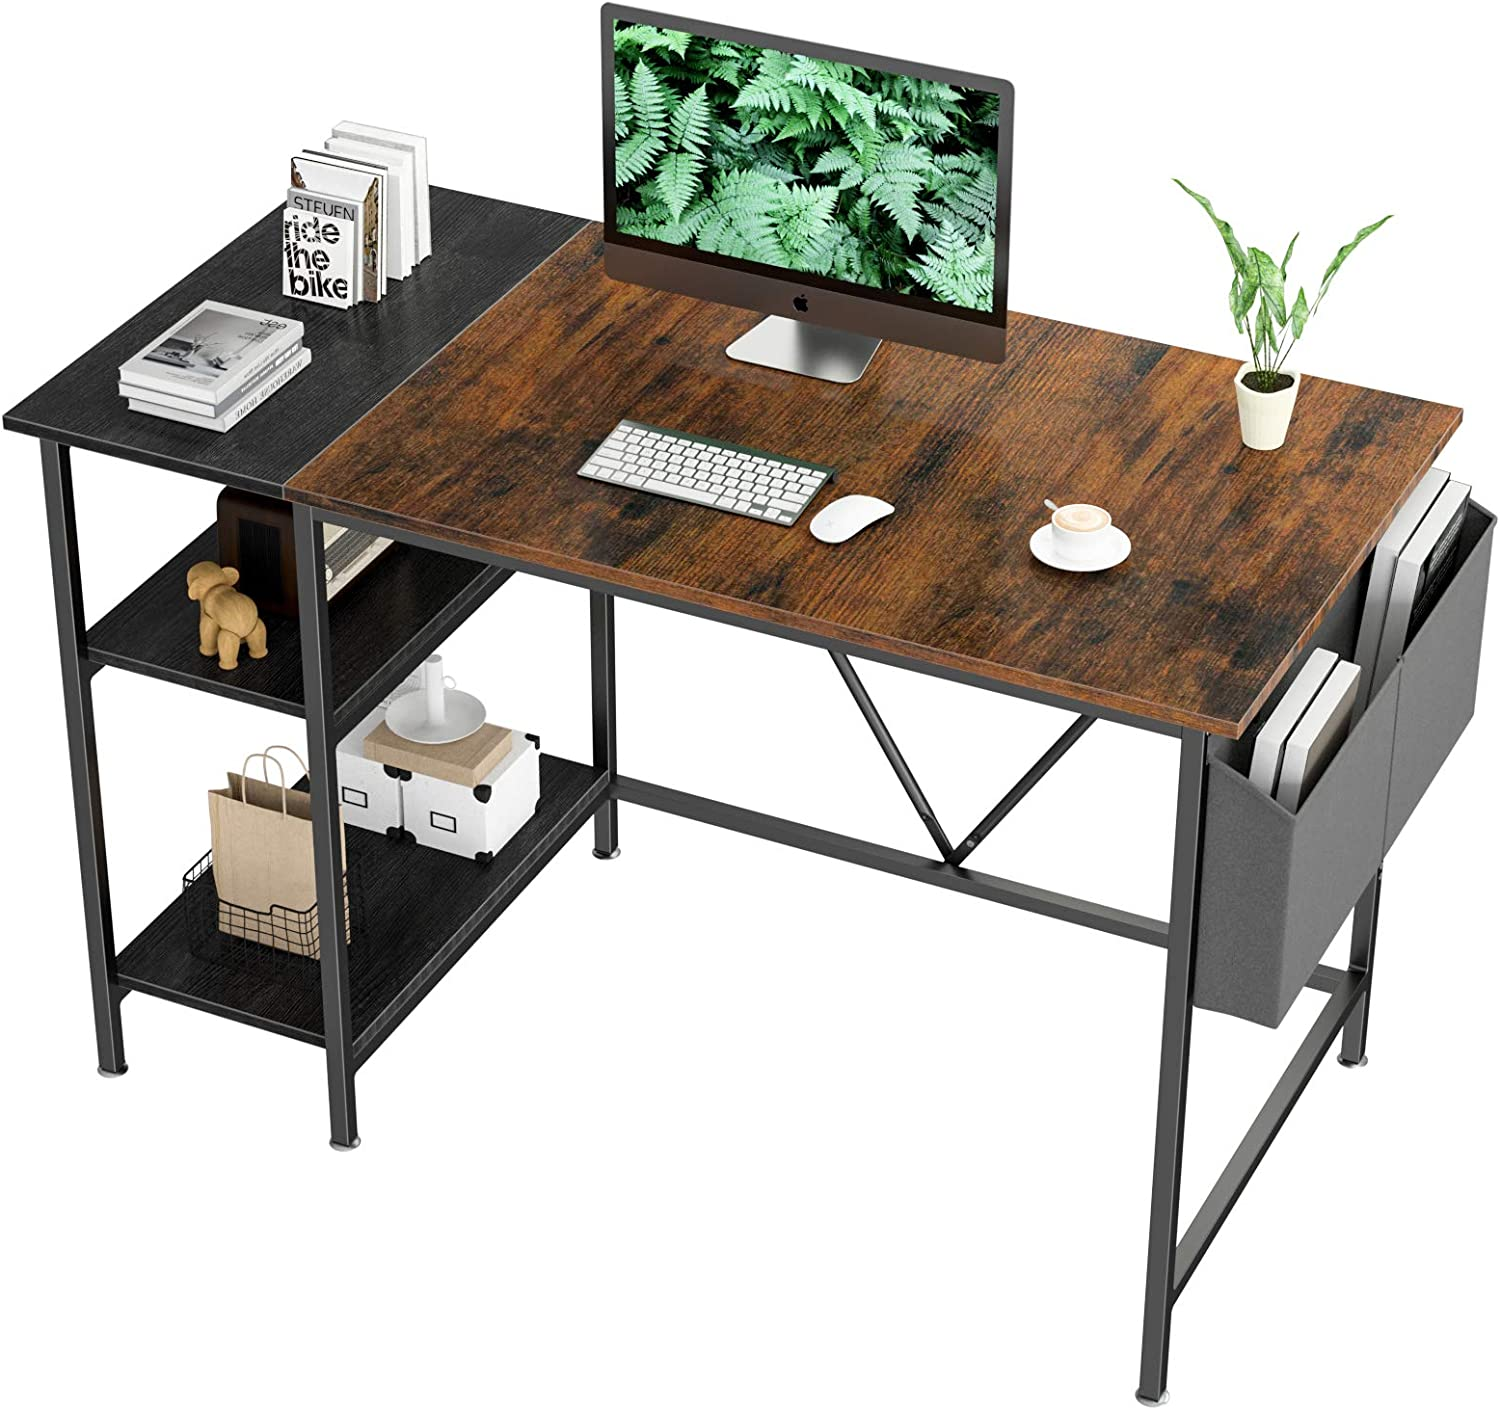 Computer Desk 47 inch Home Office Writing Study Desk, Modern Simple Style Laptop Table with Storage Bag